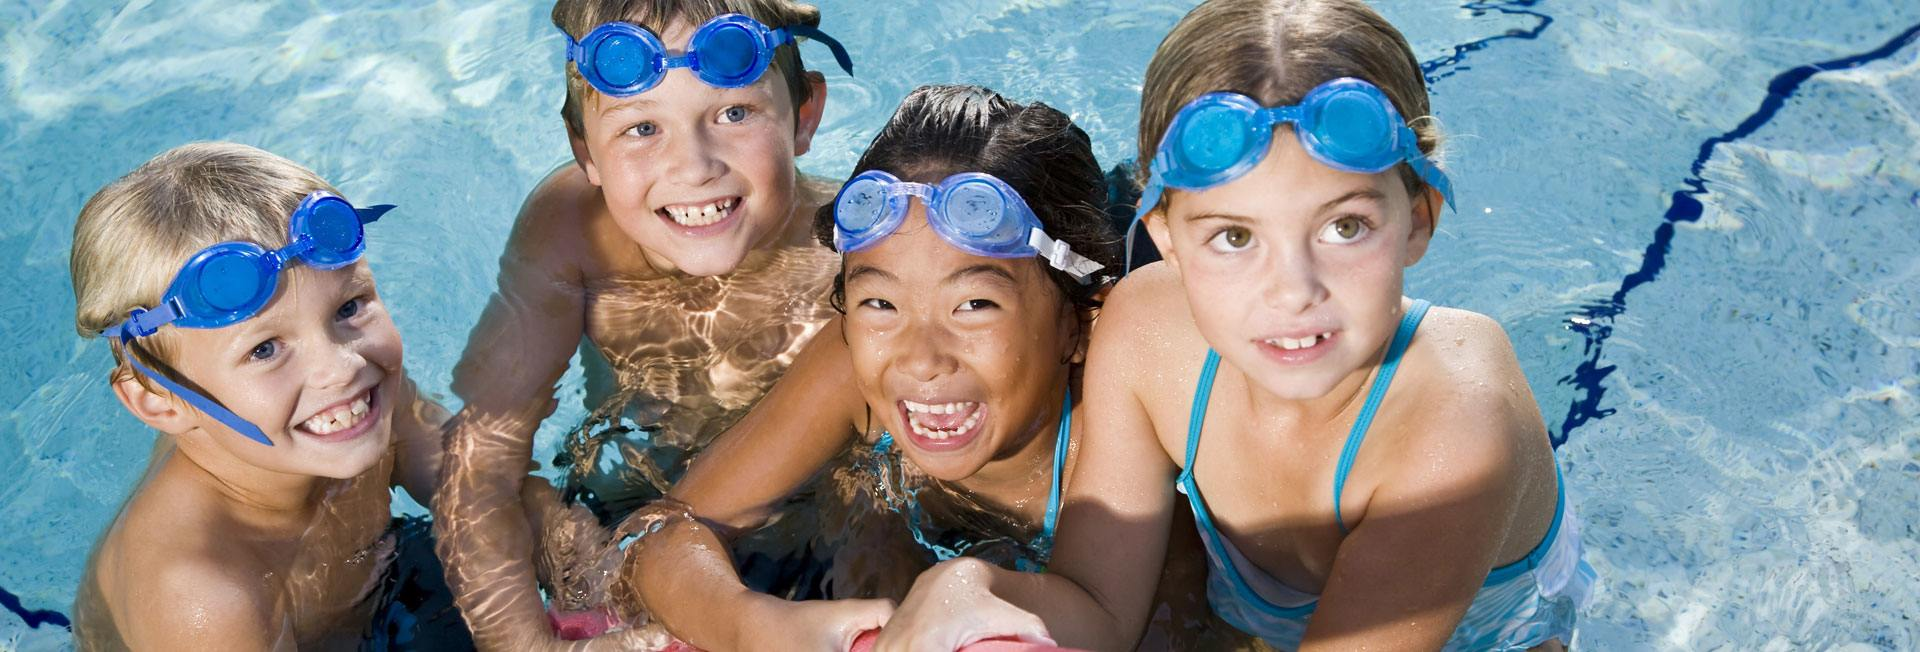 Group of children in pool